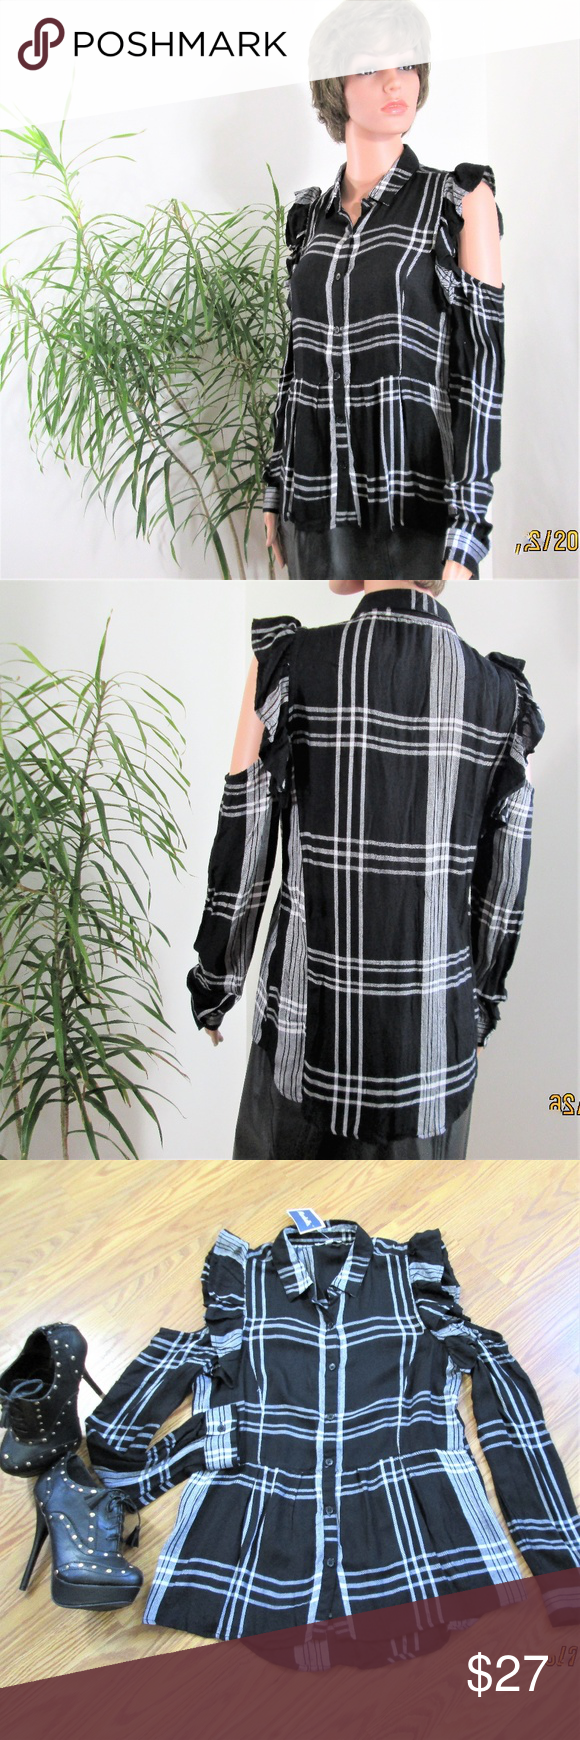 c7ad652a1 Plaid Peplum Cold Shoulder Button Down Super cute black & white plaid. Cut  out shoulders are highlighted with ruffles. Collared, button cuff long  sleeves.